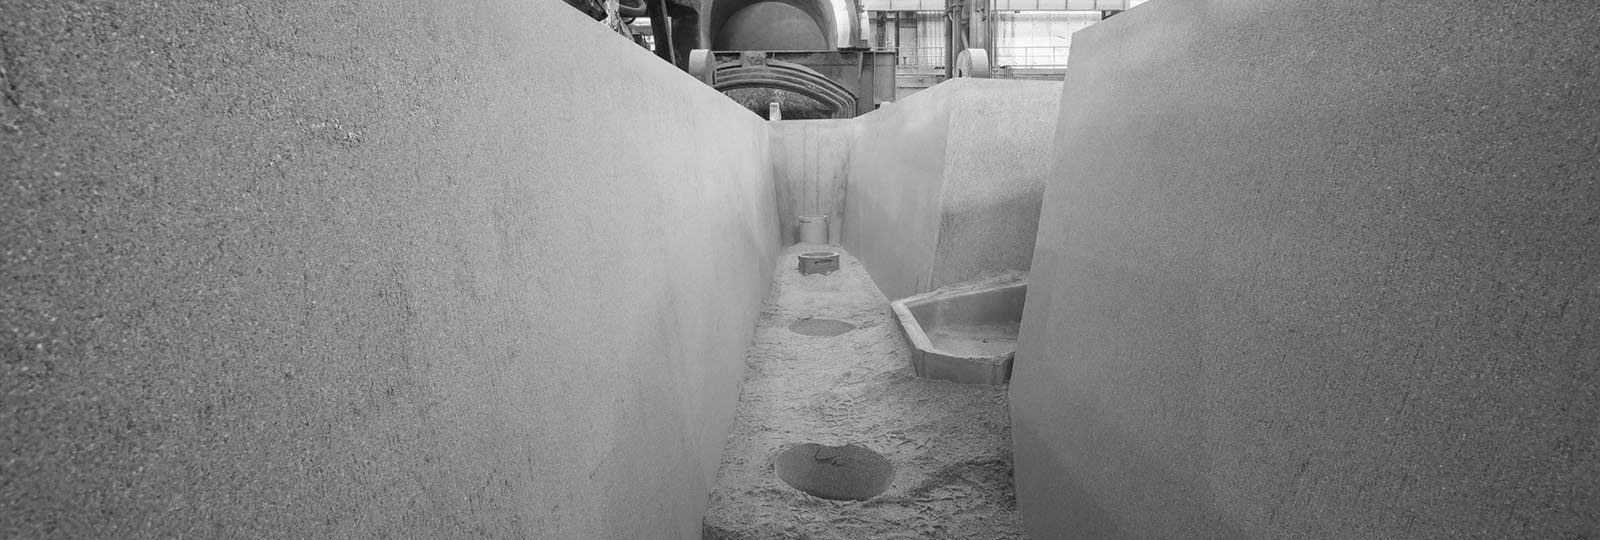 markets_refractories1